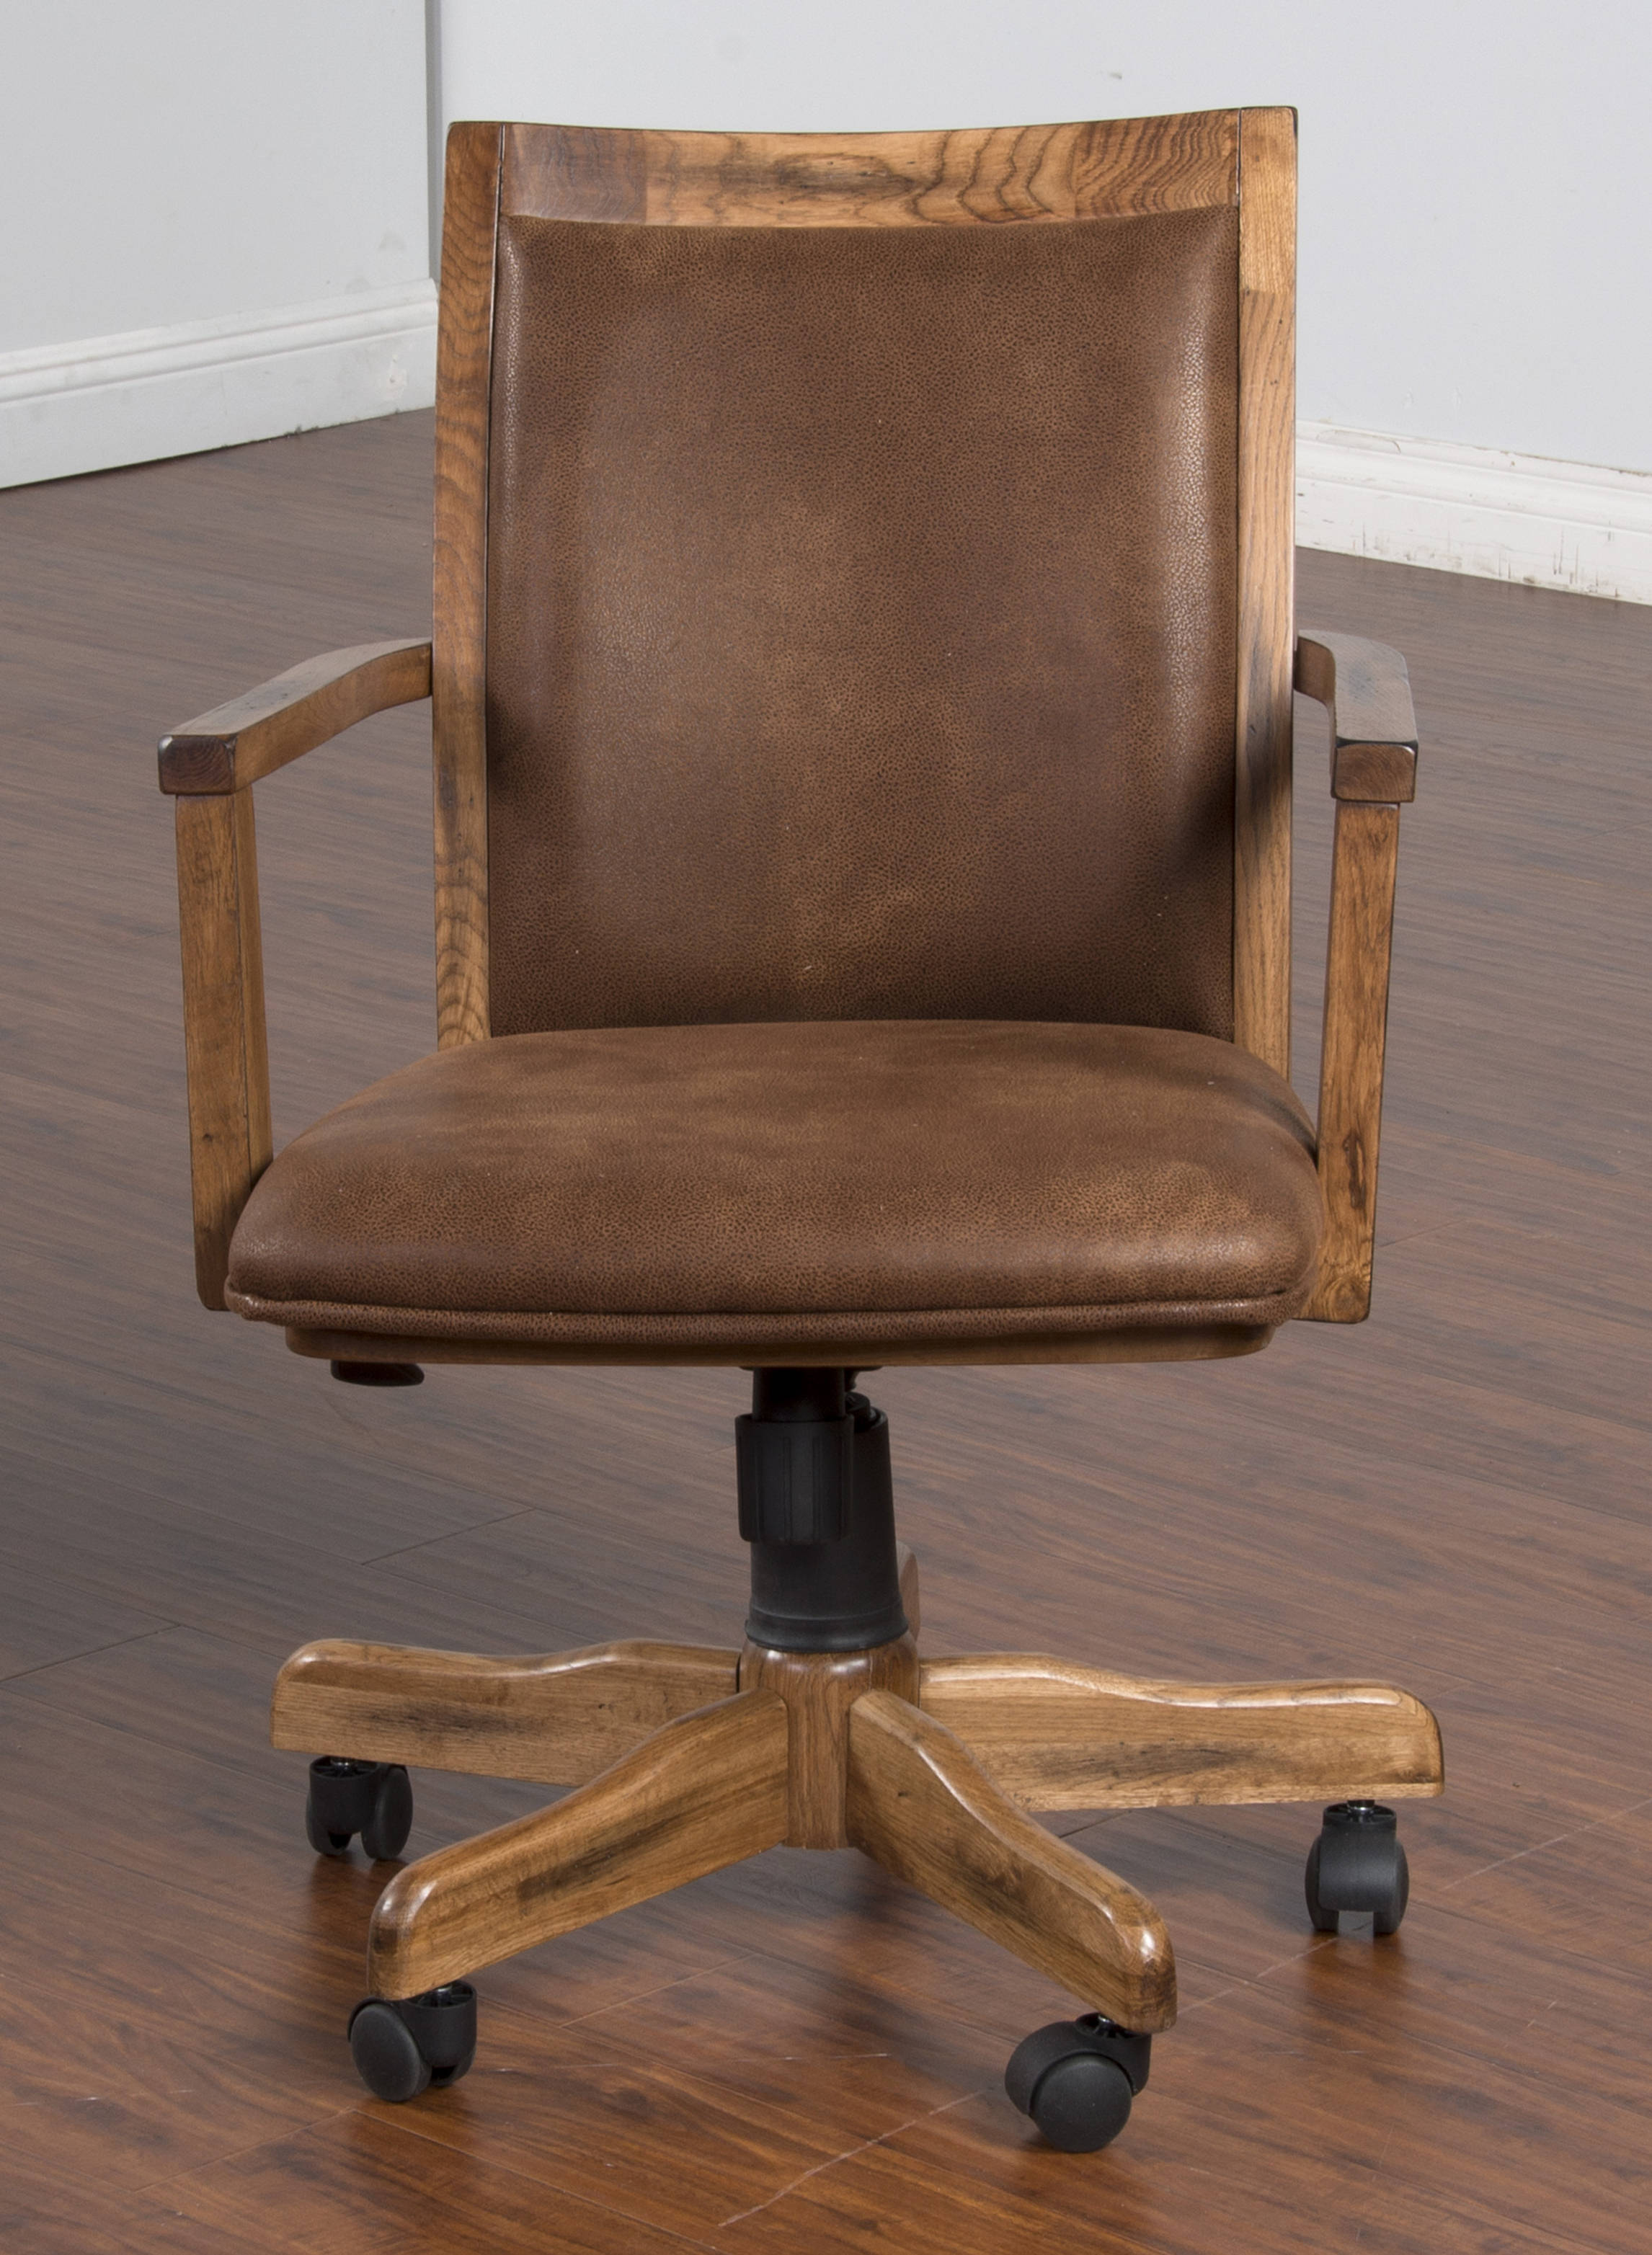 Sunny Designs Sedona Rustic Oak Office Chair Click To Enlarge